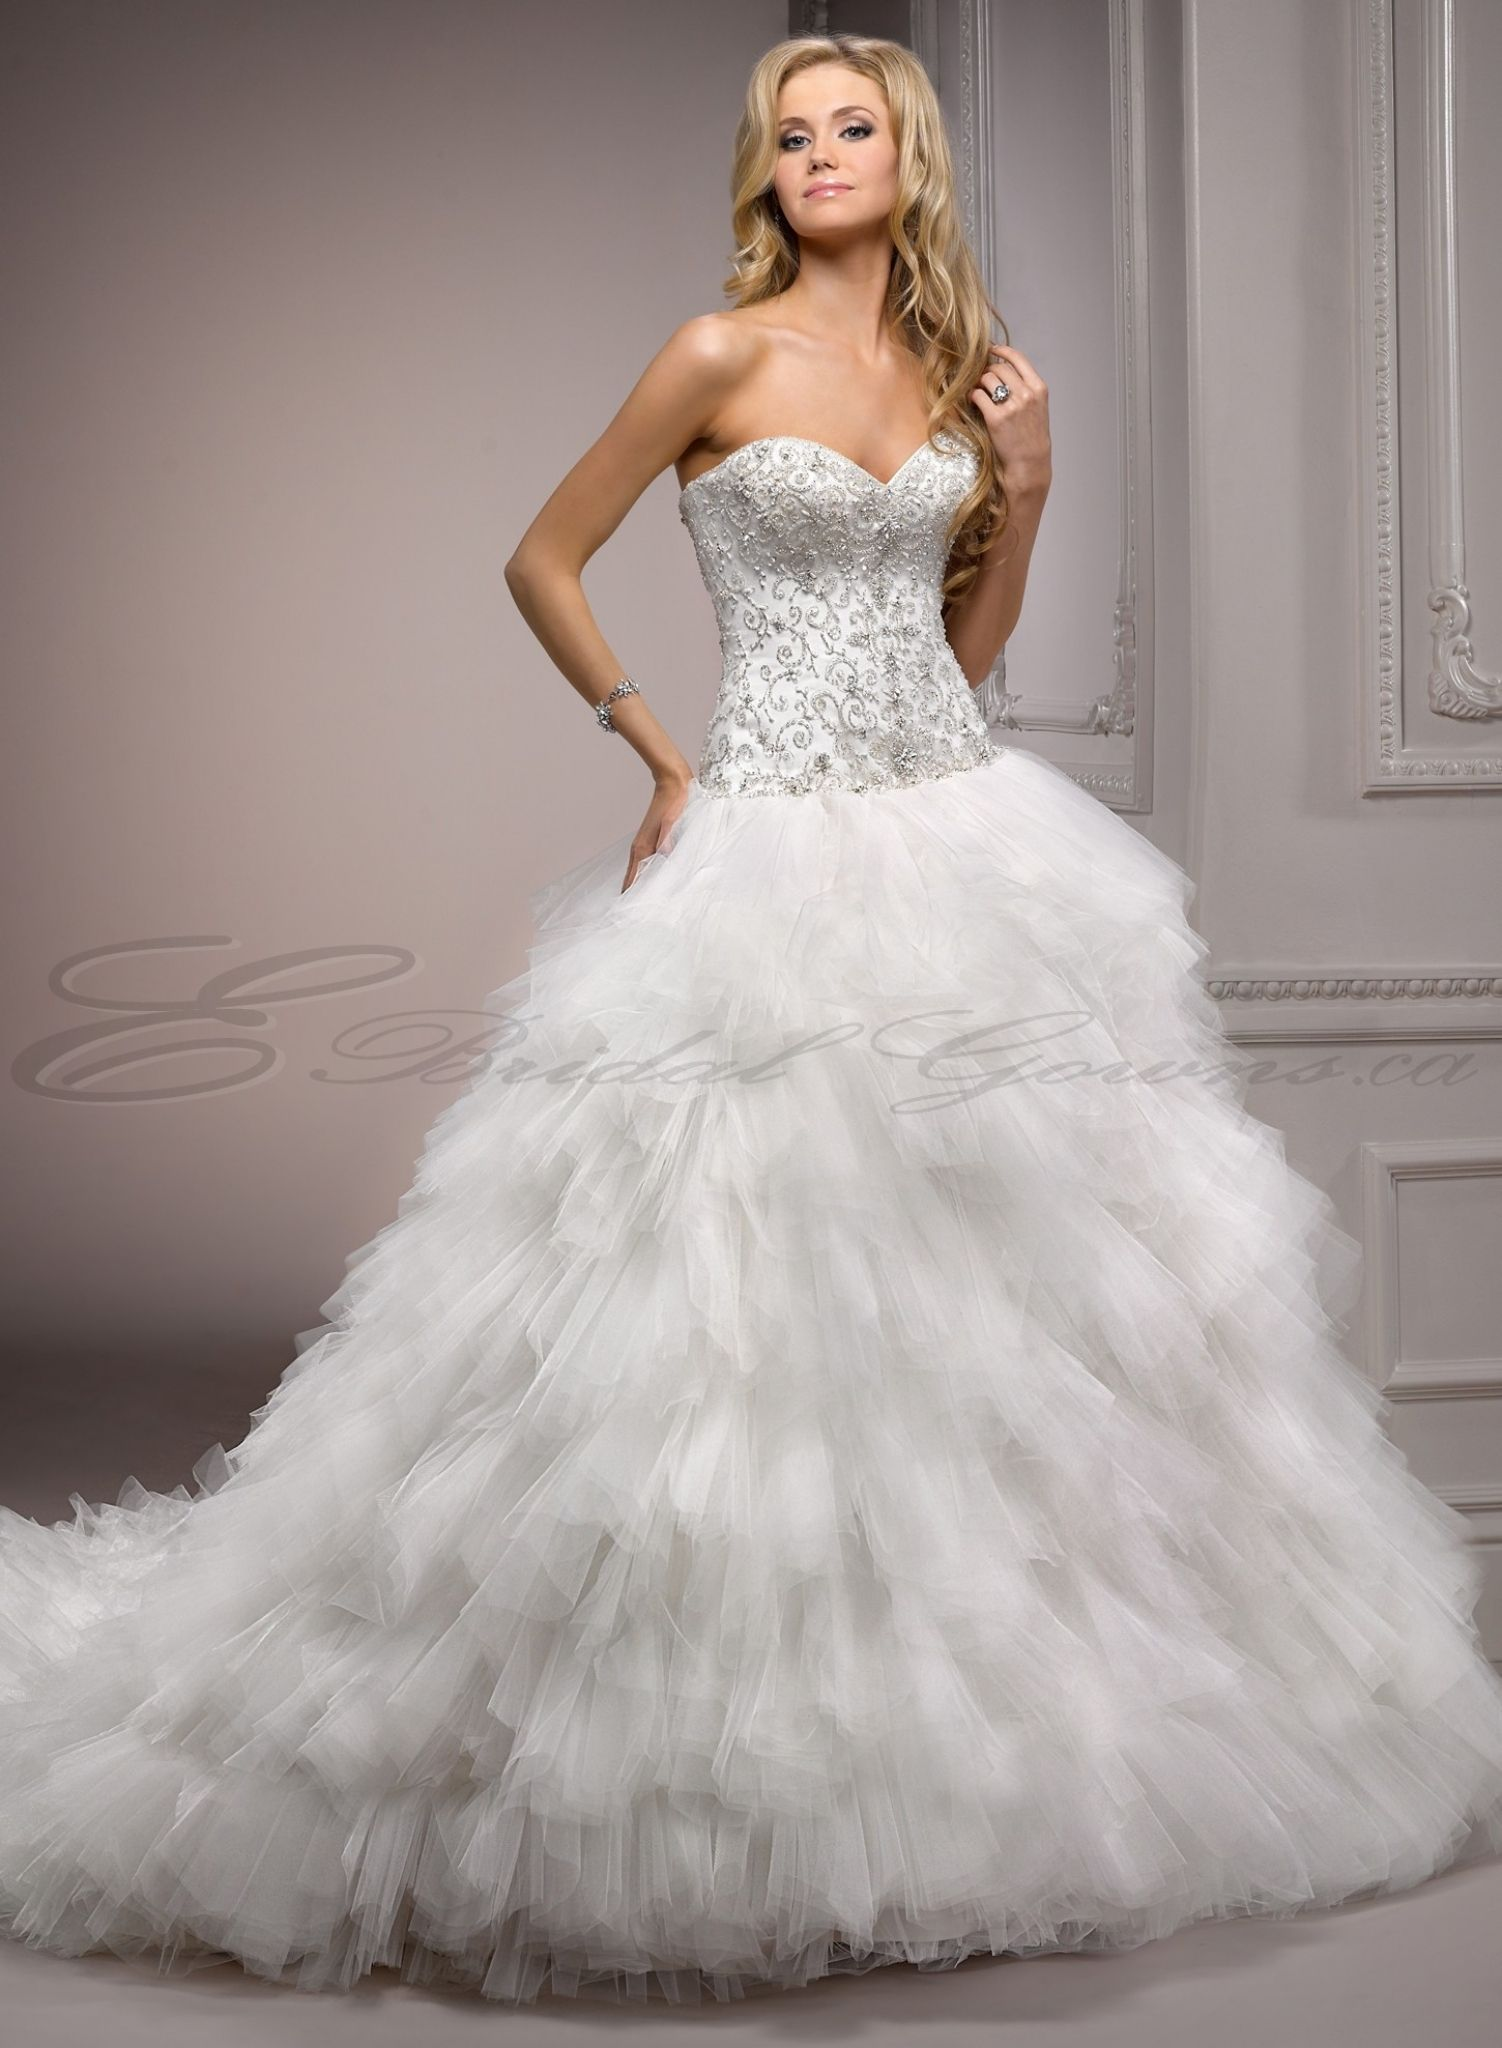 wedding dress los angeles - country dresses for weddings Check ...